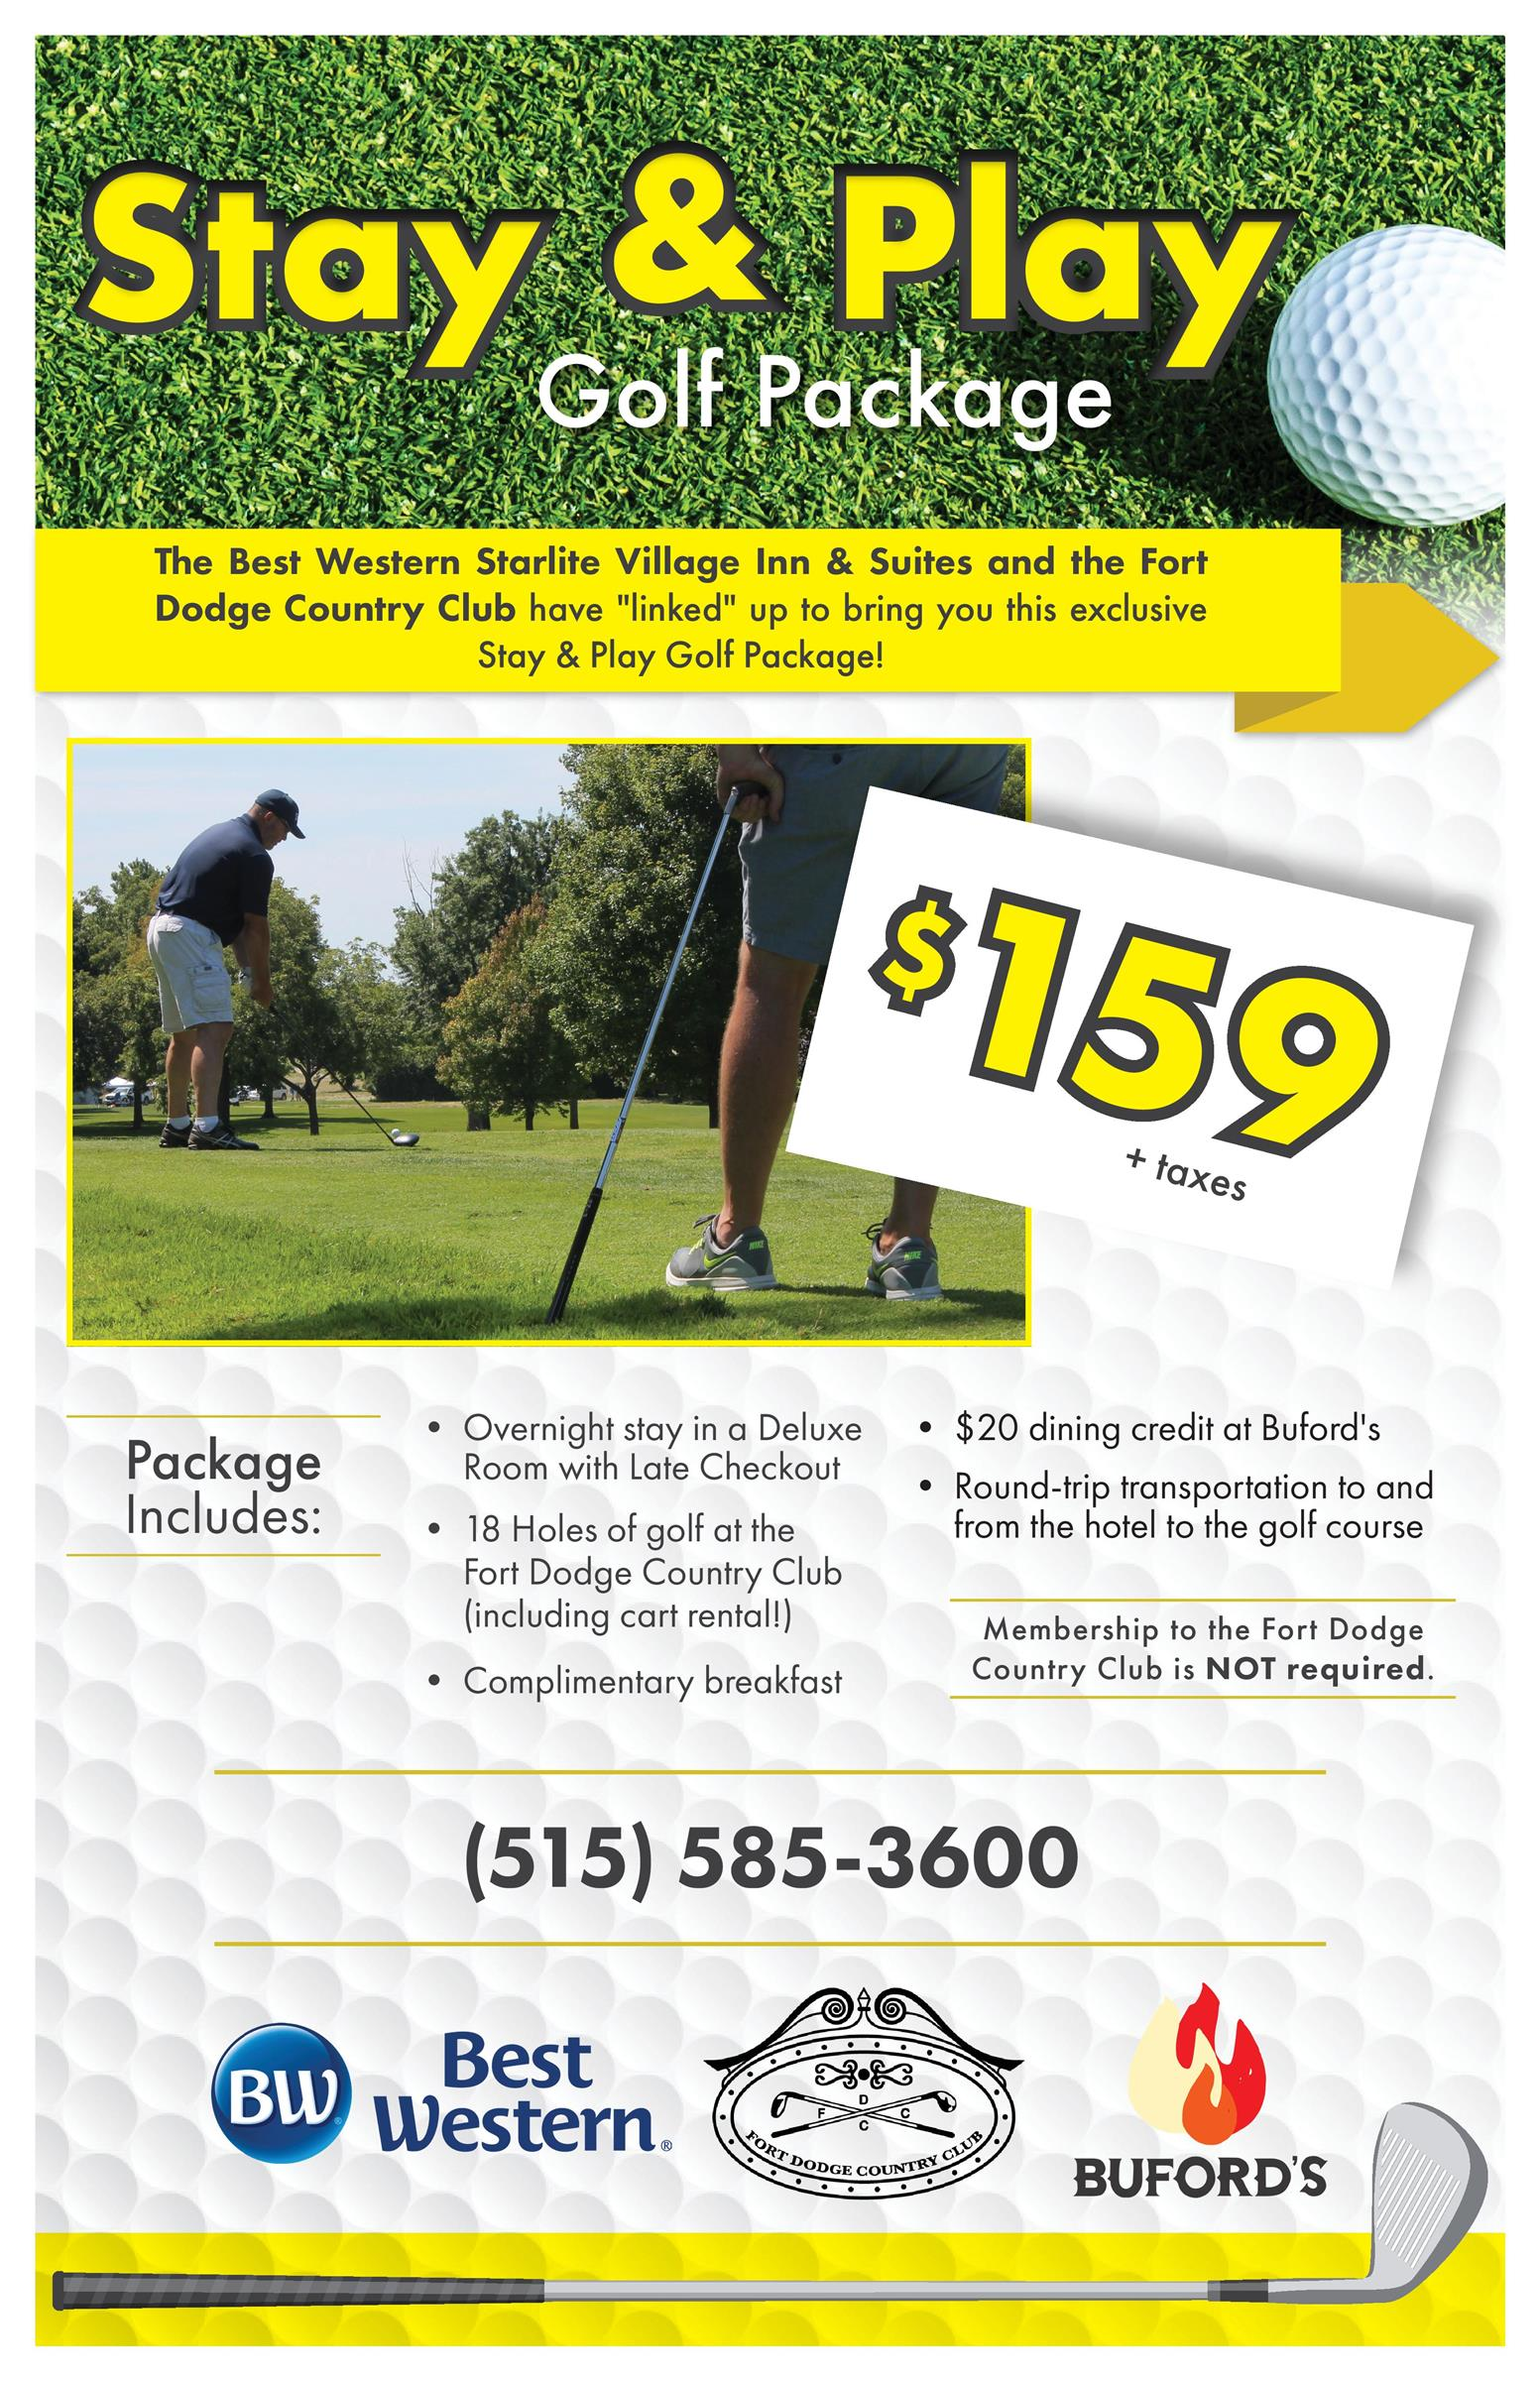 """Stay and Play Golf Package The Best Western Starlite Village Inn & Suites and the Fort Dodge Country Club have """"linked"""" up to bring you this exclusive Stay & play Golf Package! $159 + taxes Package Includes: Overnight stay in a Deluxe Room with Late Checkout 18 Holes of golf at the Fort Dodge Country Club (including cart rental!) Complimentary breakfast $20 dining credit at Buford's Round-trip transportation to and from the hotel to the golf course Membership to the Fort Dodge Country Club is NOT required (515)585-3600 Best Western Fort Dodge Country Club Buford's"""